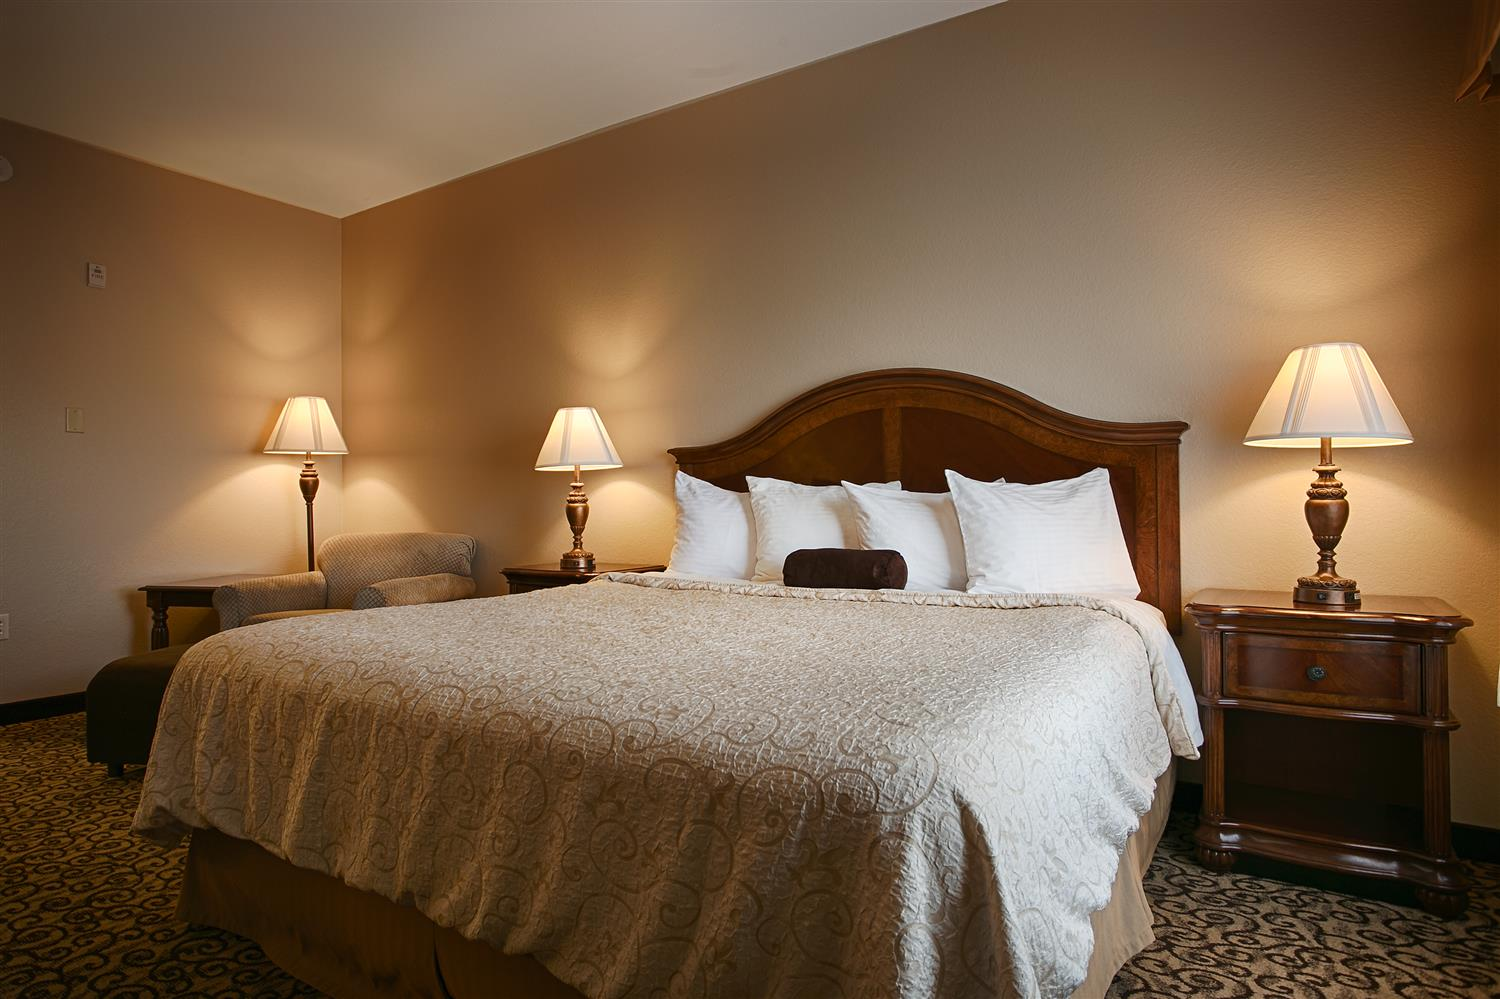 This Room Features 1 King Sized Bed